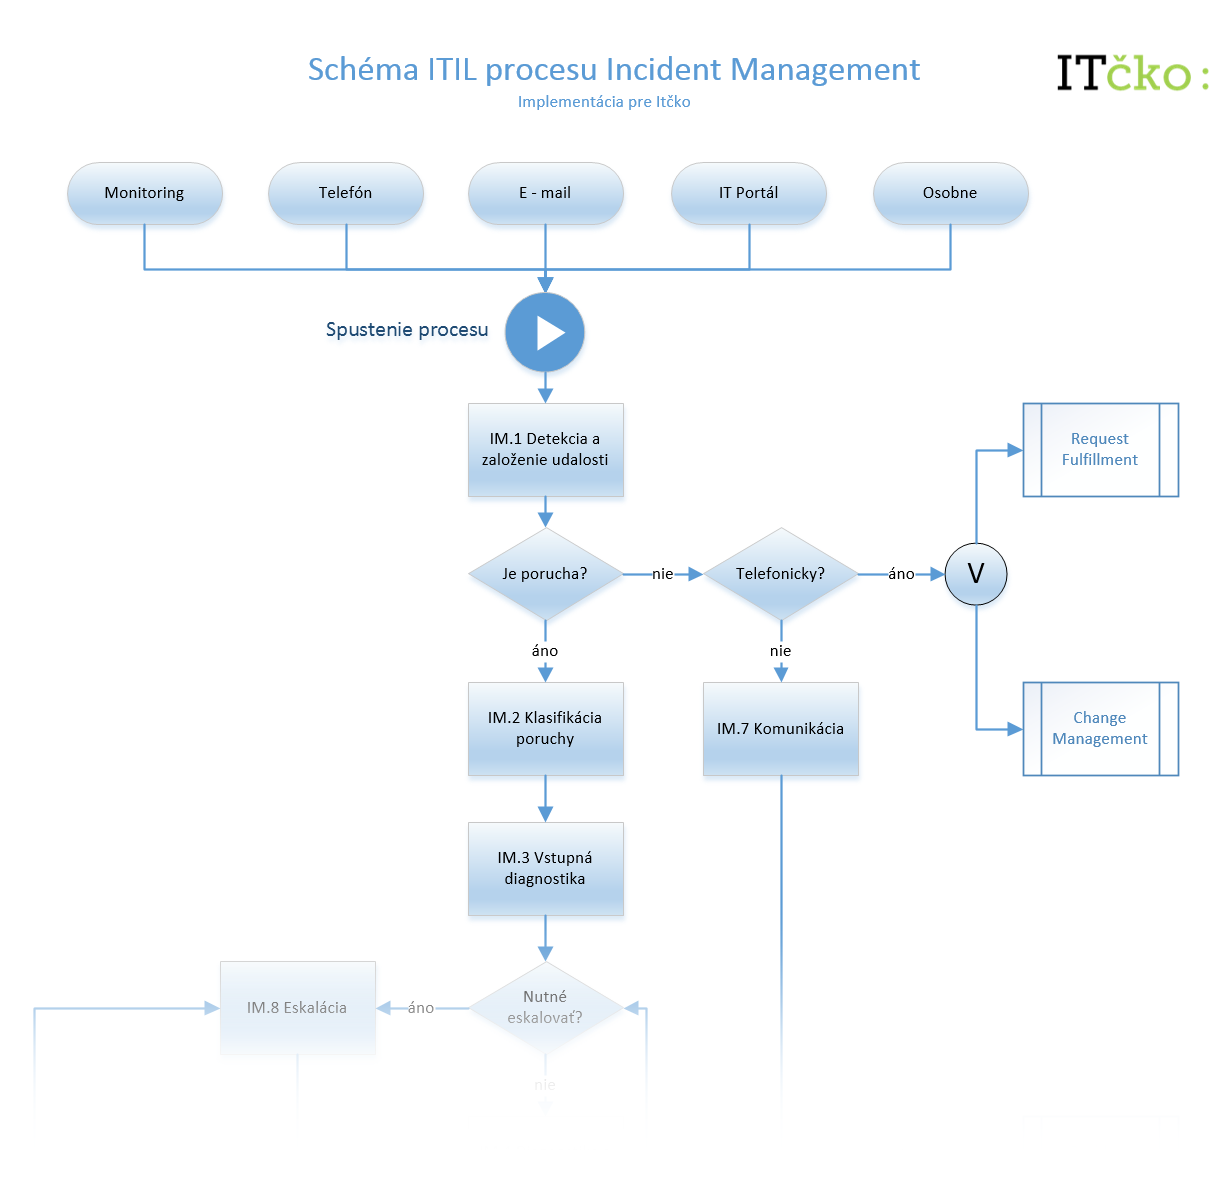 Incident Management ITcko Workflow